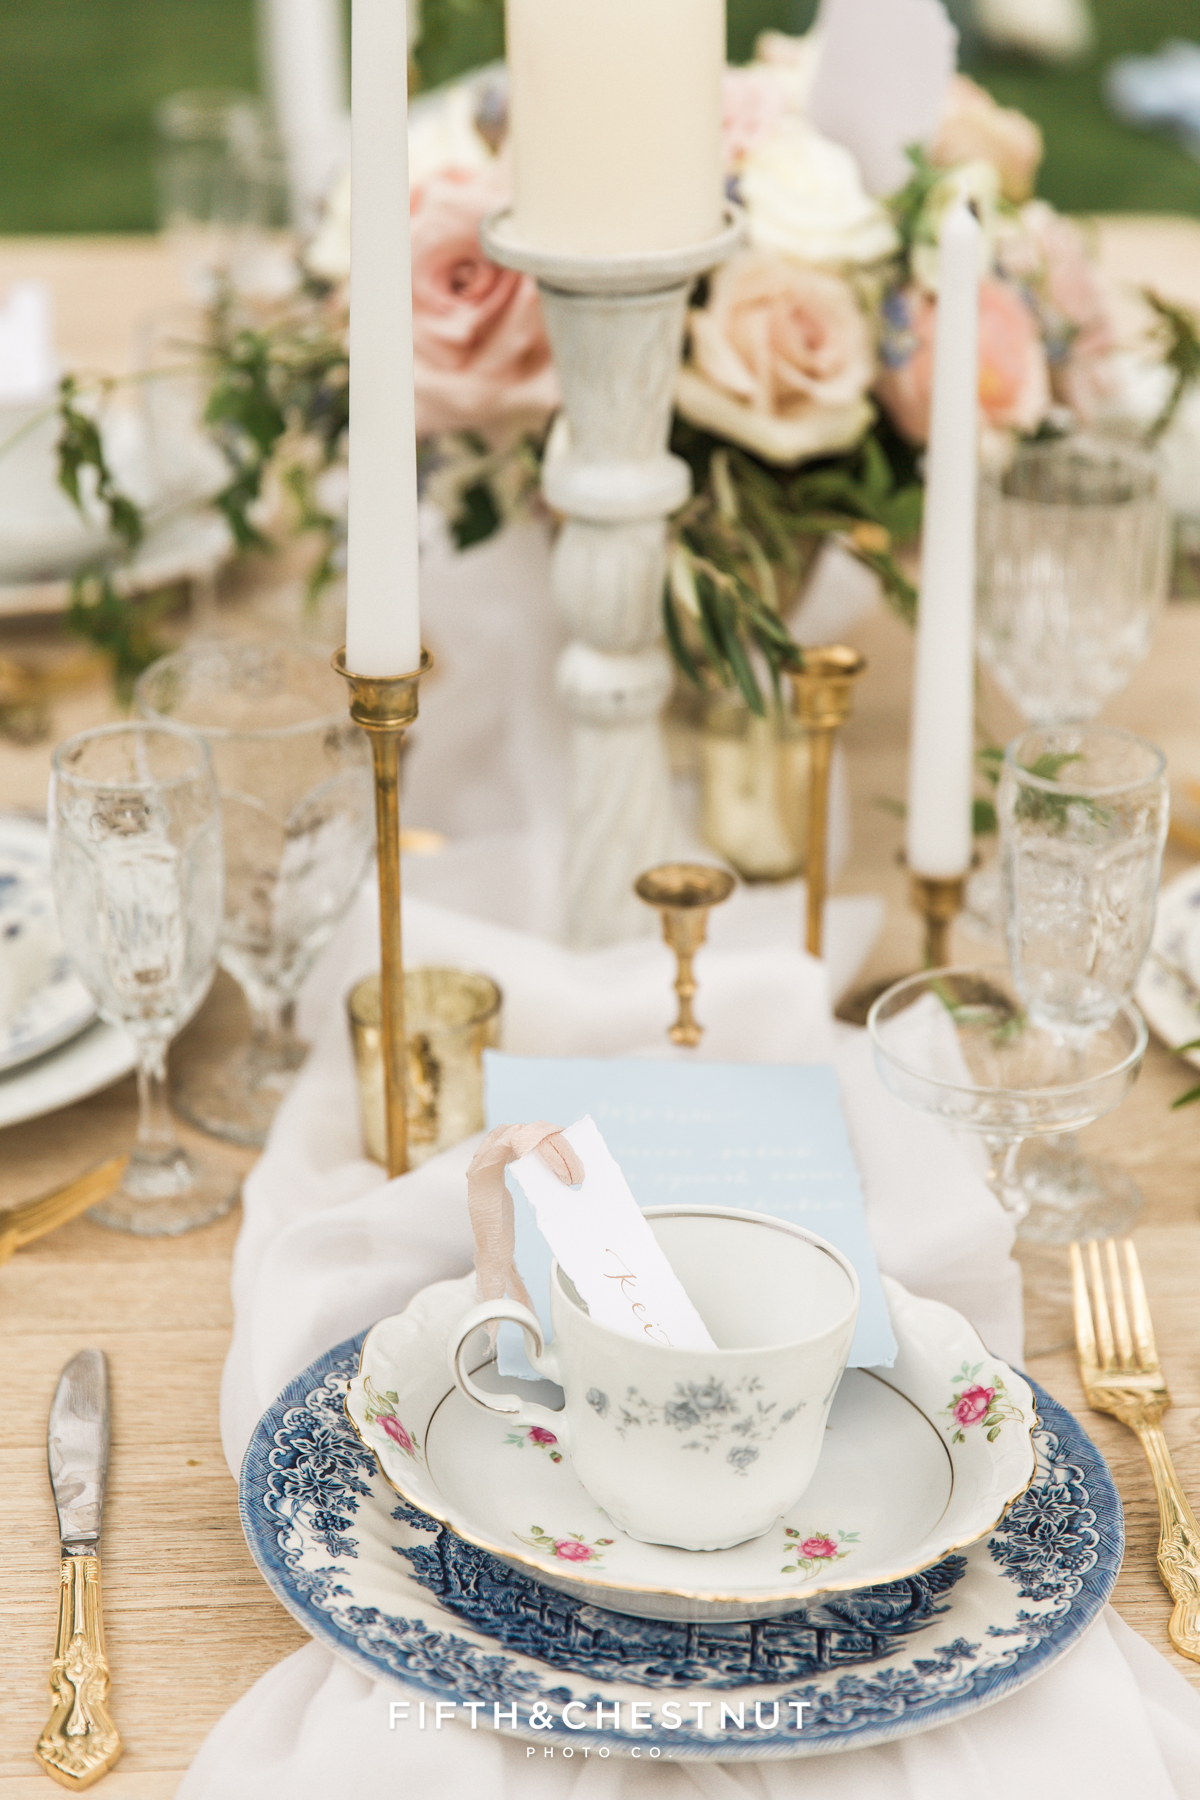 Place setting details with mismatched gold edged plates for a Dusty Blue Private Estate Country French Wedding Styled Shoot